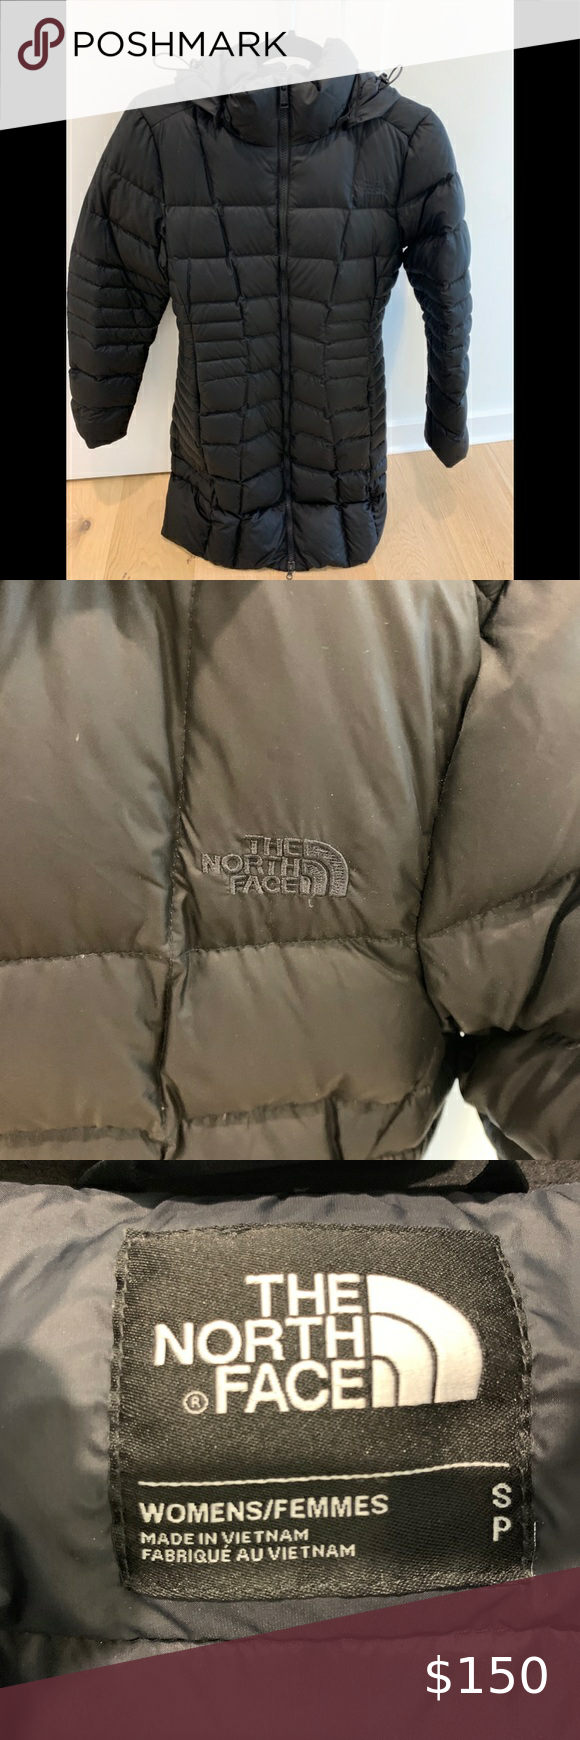 Long North Face Puffer Jacket North Face Puffer Jacket The North Face North Face Puffer [ 1740 x 580 Pixel ]